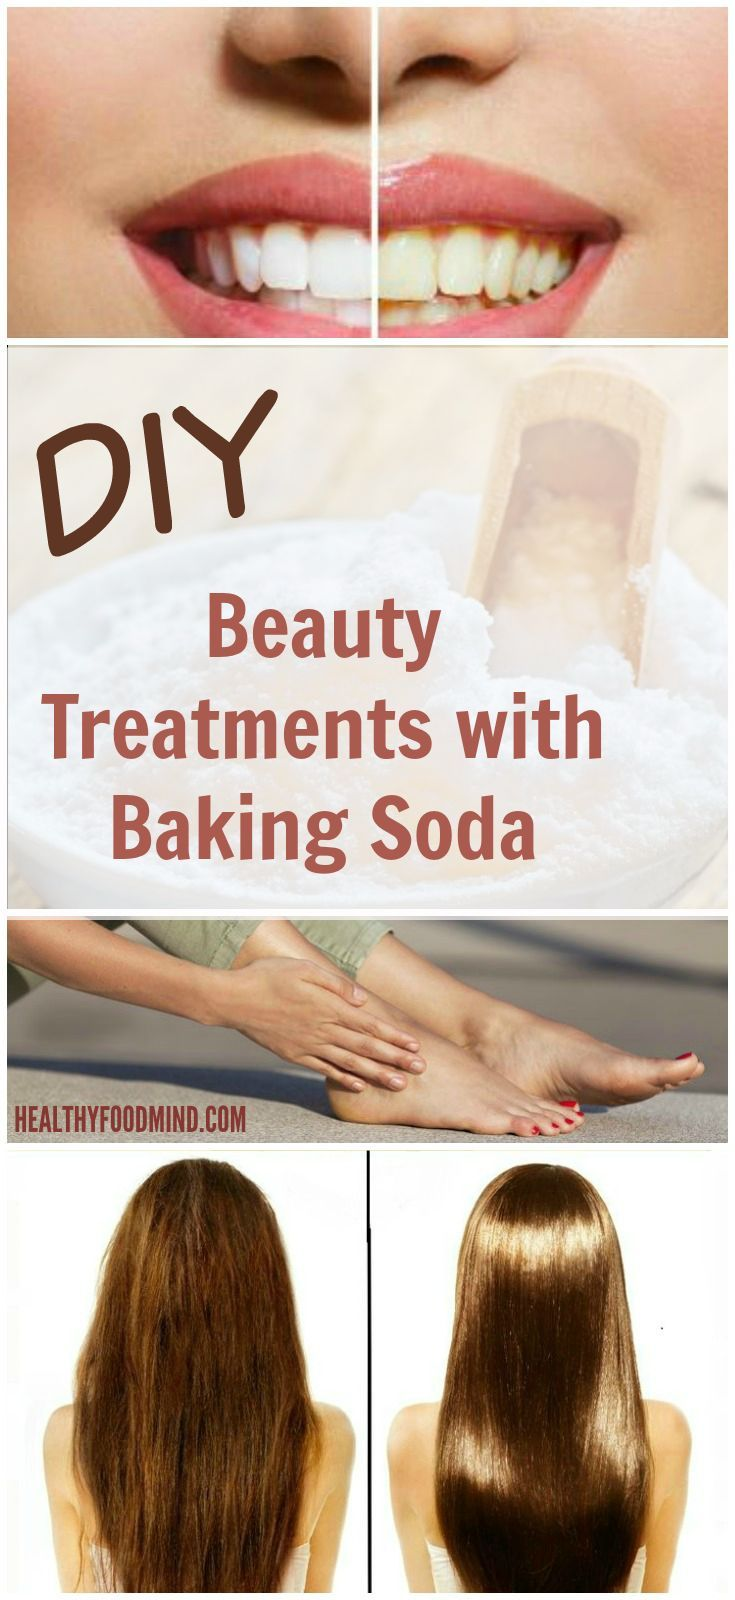 Completely natural and effective health and beauty tips with baking soda! A true multitasking wonder for a ton of DIY beauty and health needs...